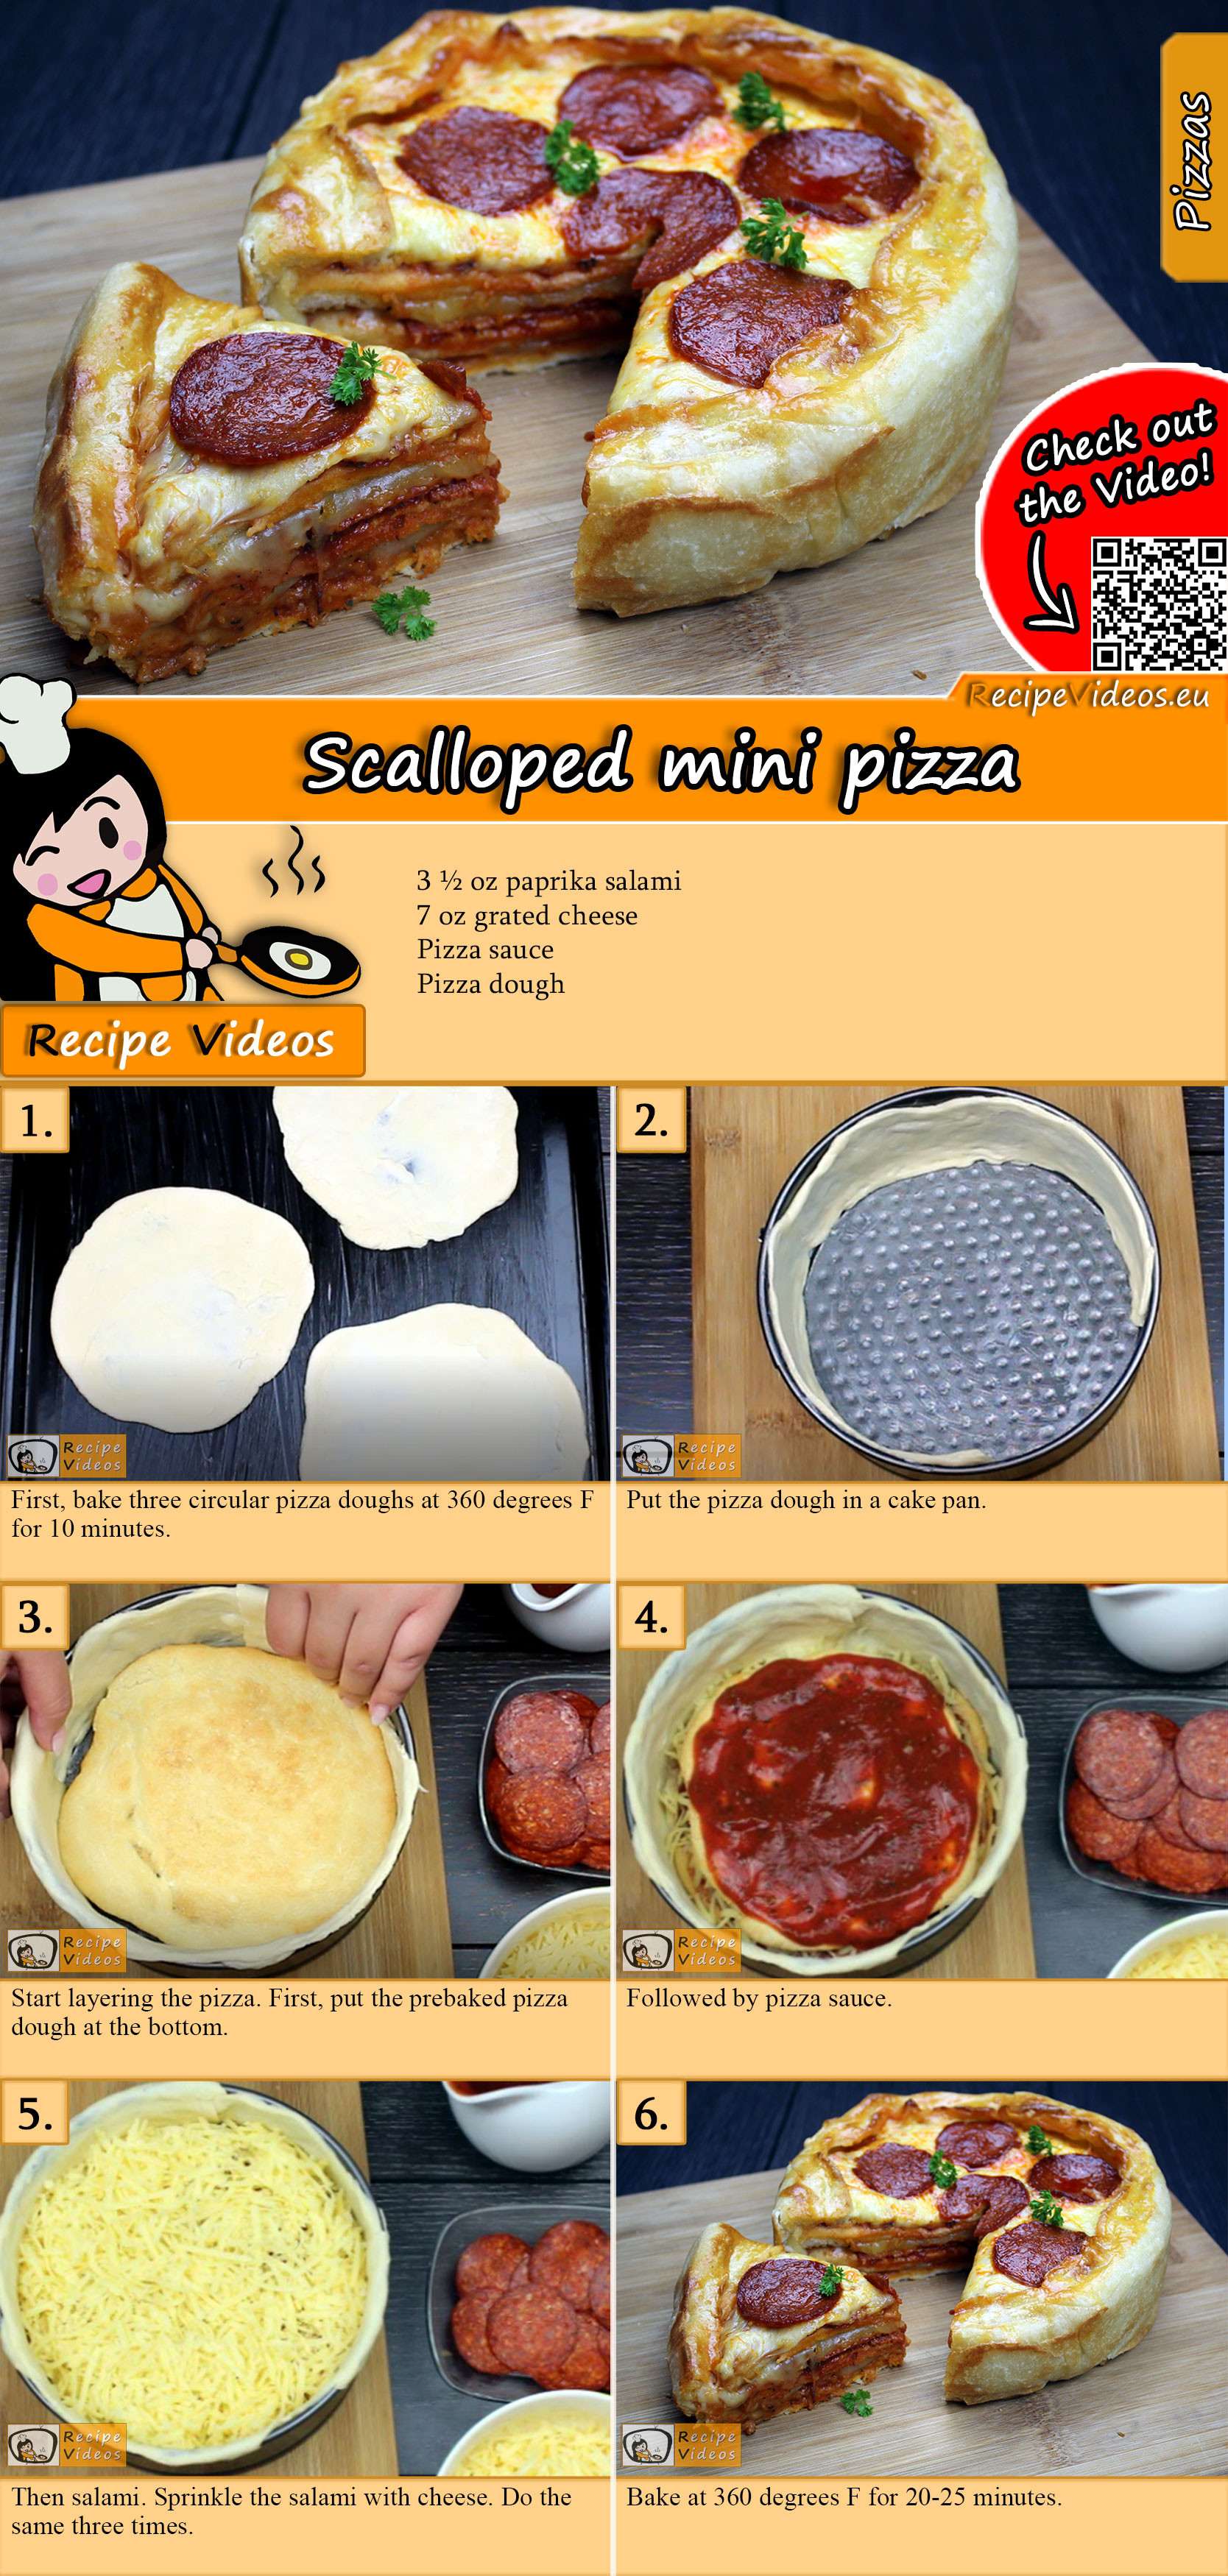 Scalloped mini pizza recipe with video